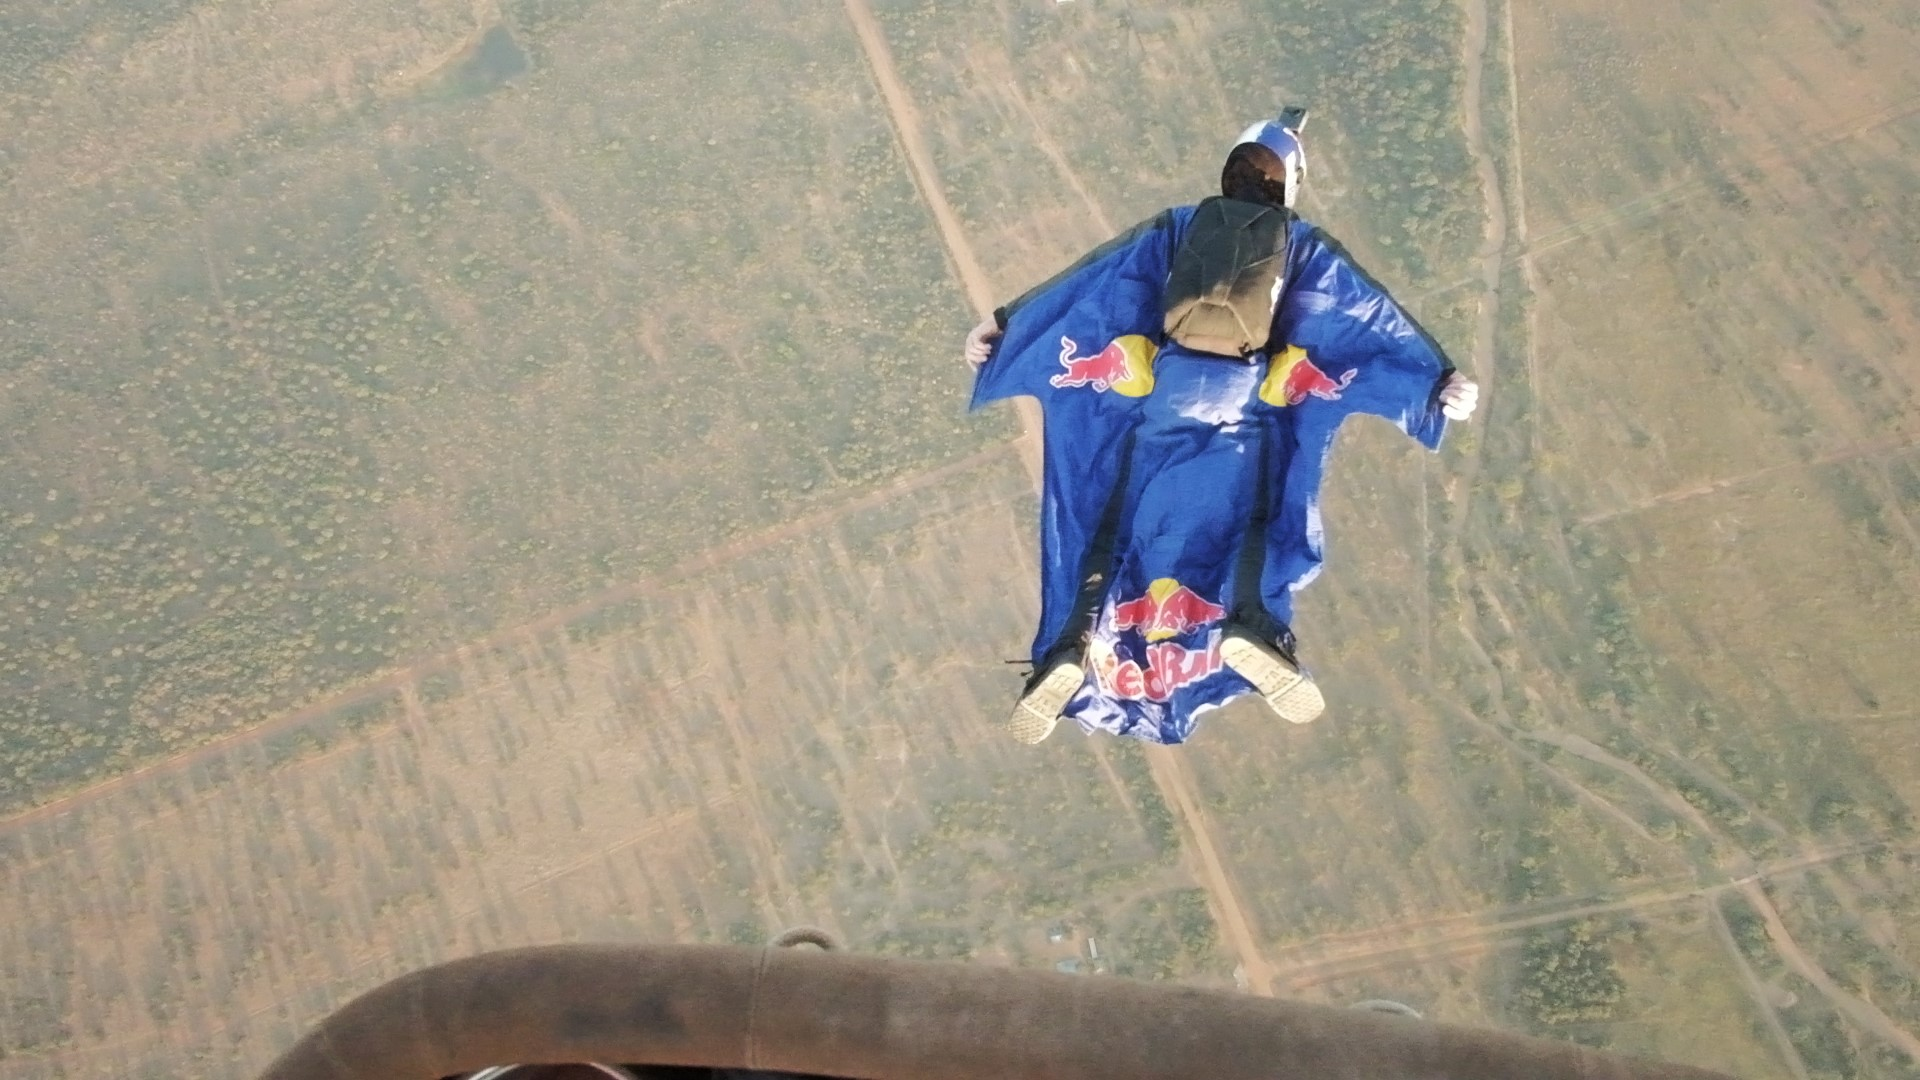 Charity skydive to save rhinos